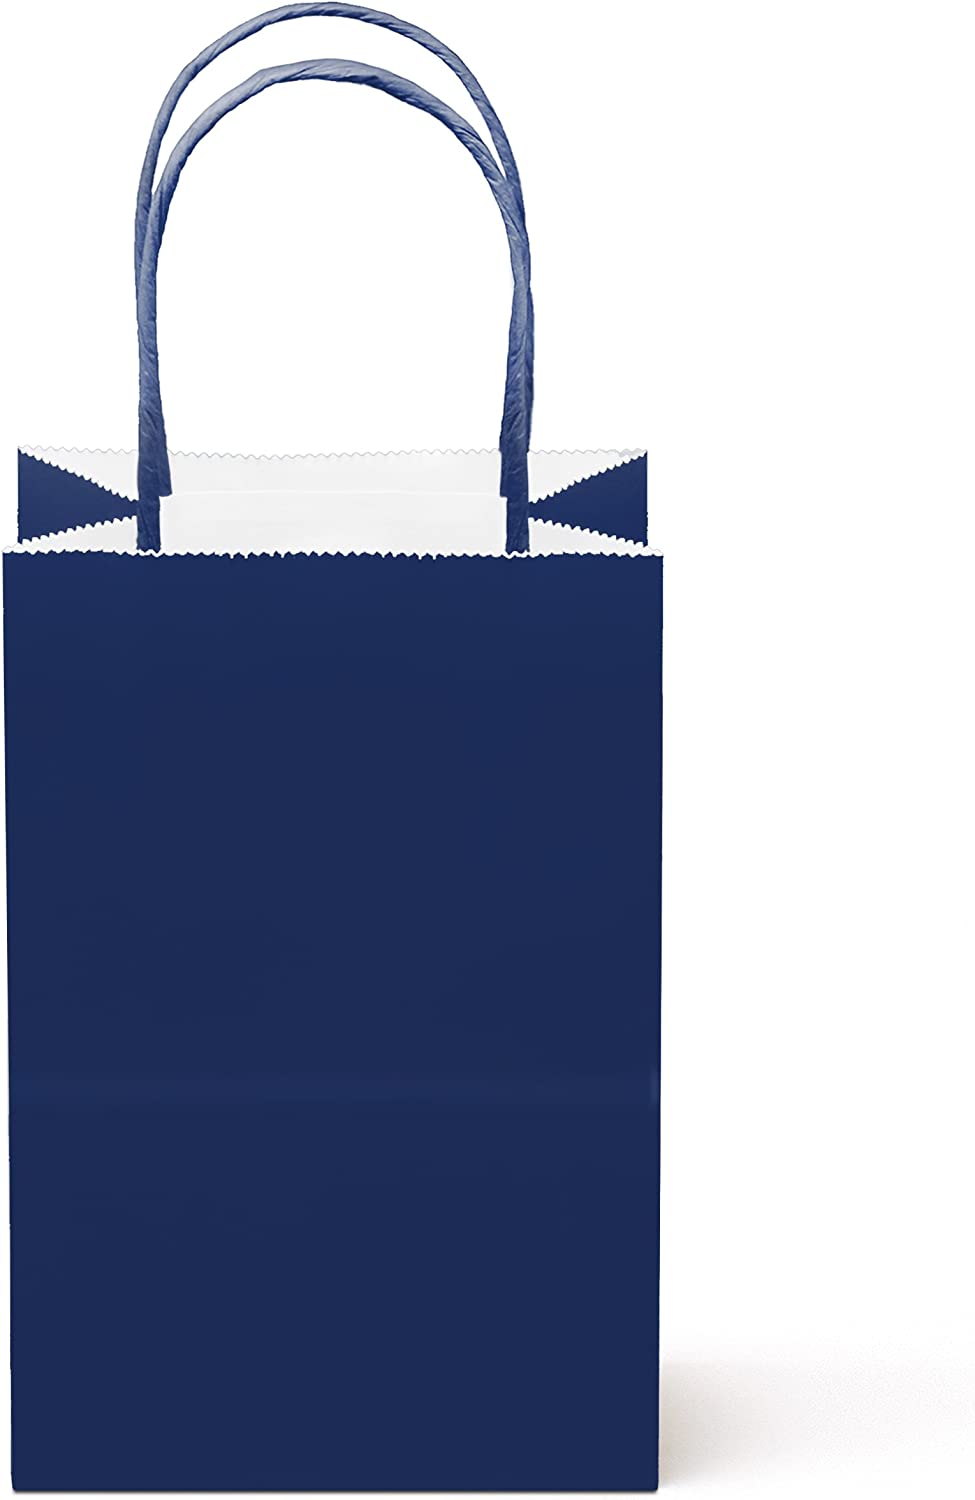 """24 Counts Food Safe Premium Paper and Ink Small 8.5"""" X 5.25"""", Vivid Colored Kraft Bag with Colored Sturdy Handle, Perfect for Goodie Favor DIY Bag, Environmentally Safe (Small, Navy)"""